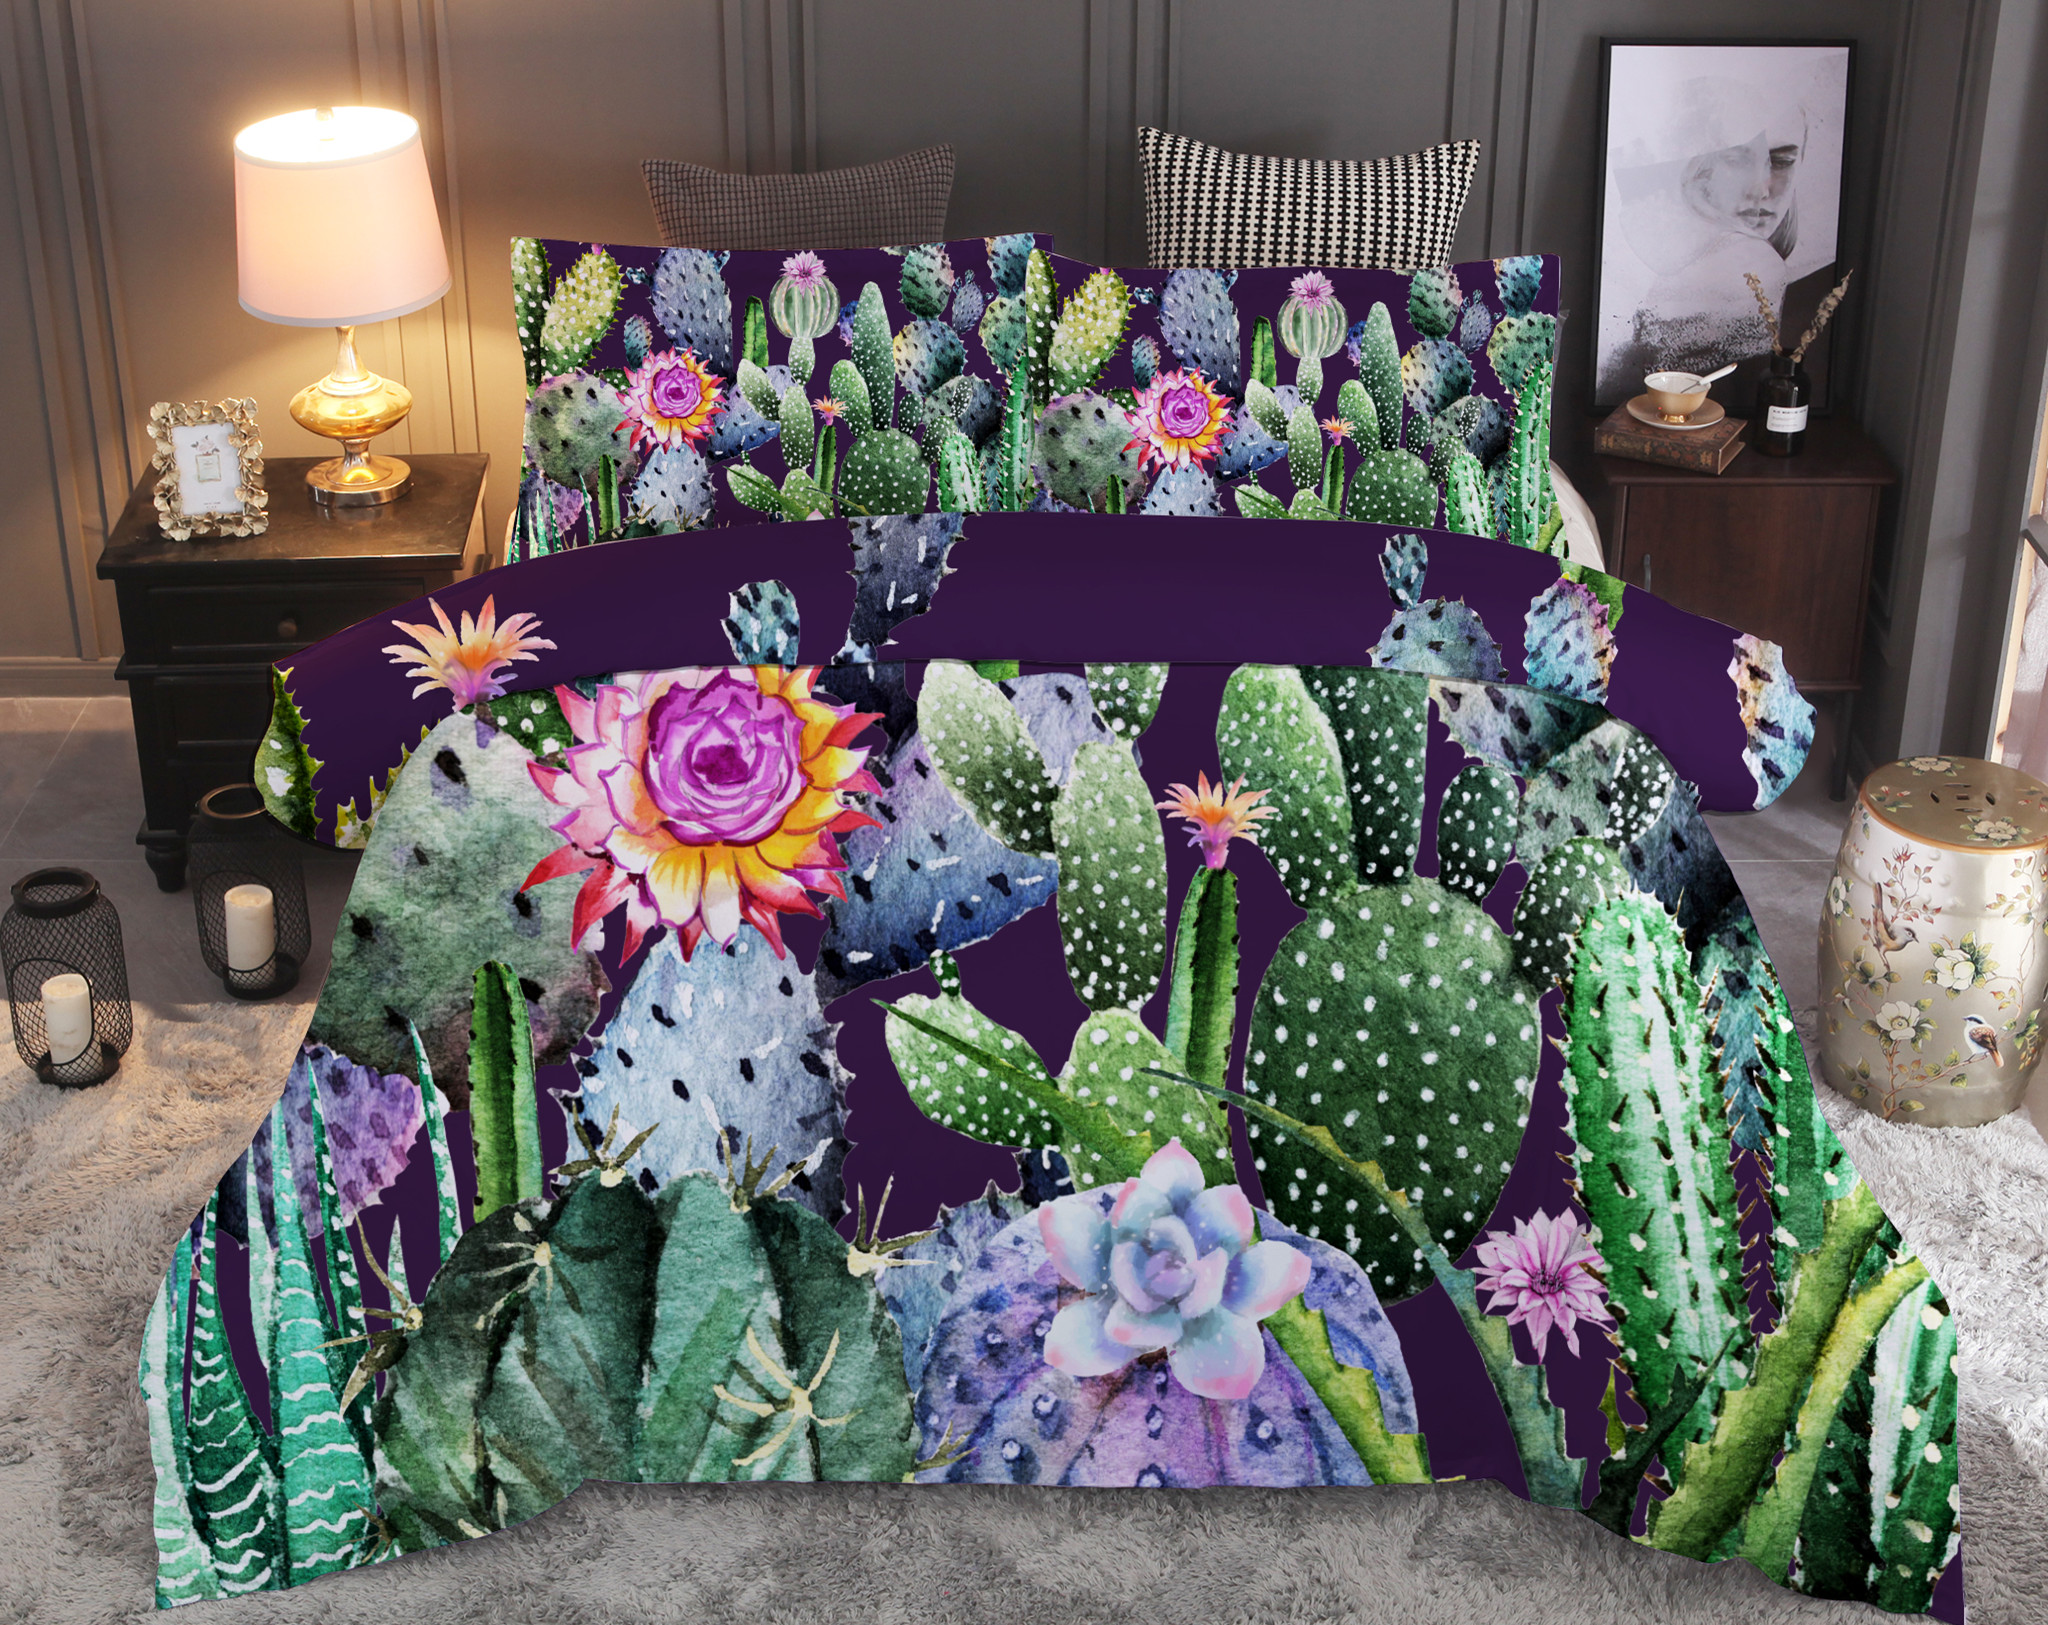 Tropical Plant Bedding Set Cactus With Flower Duvet Cover Sets Queen King Quilt Cover Bed Linen